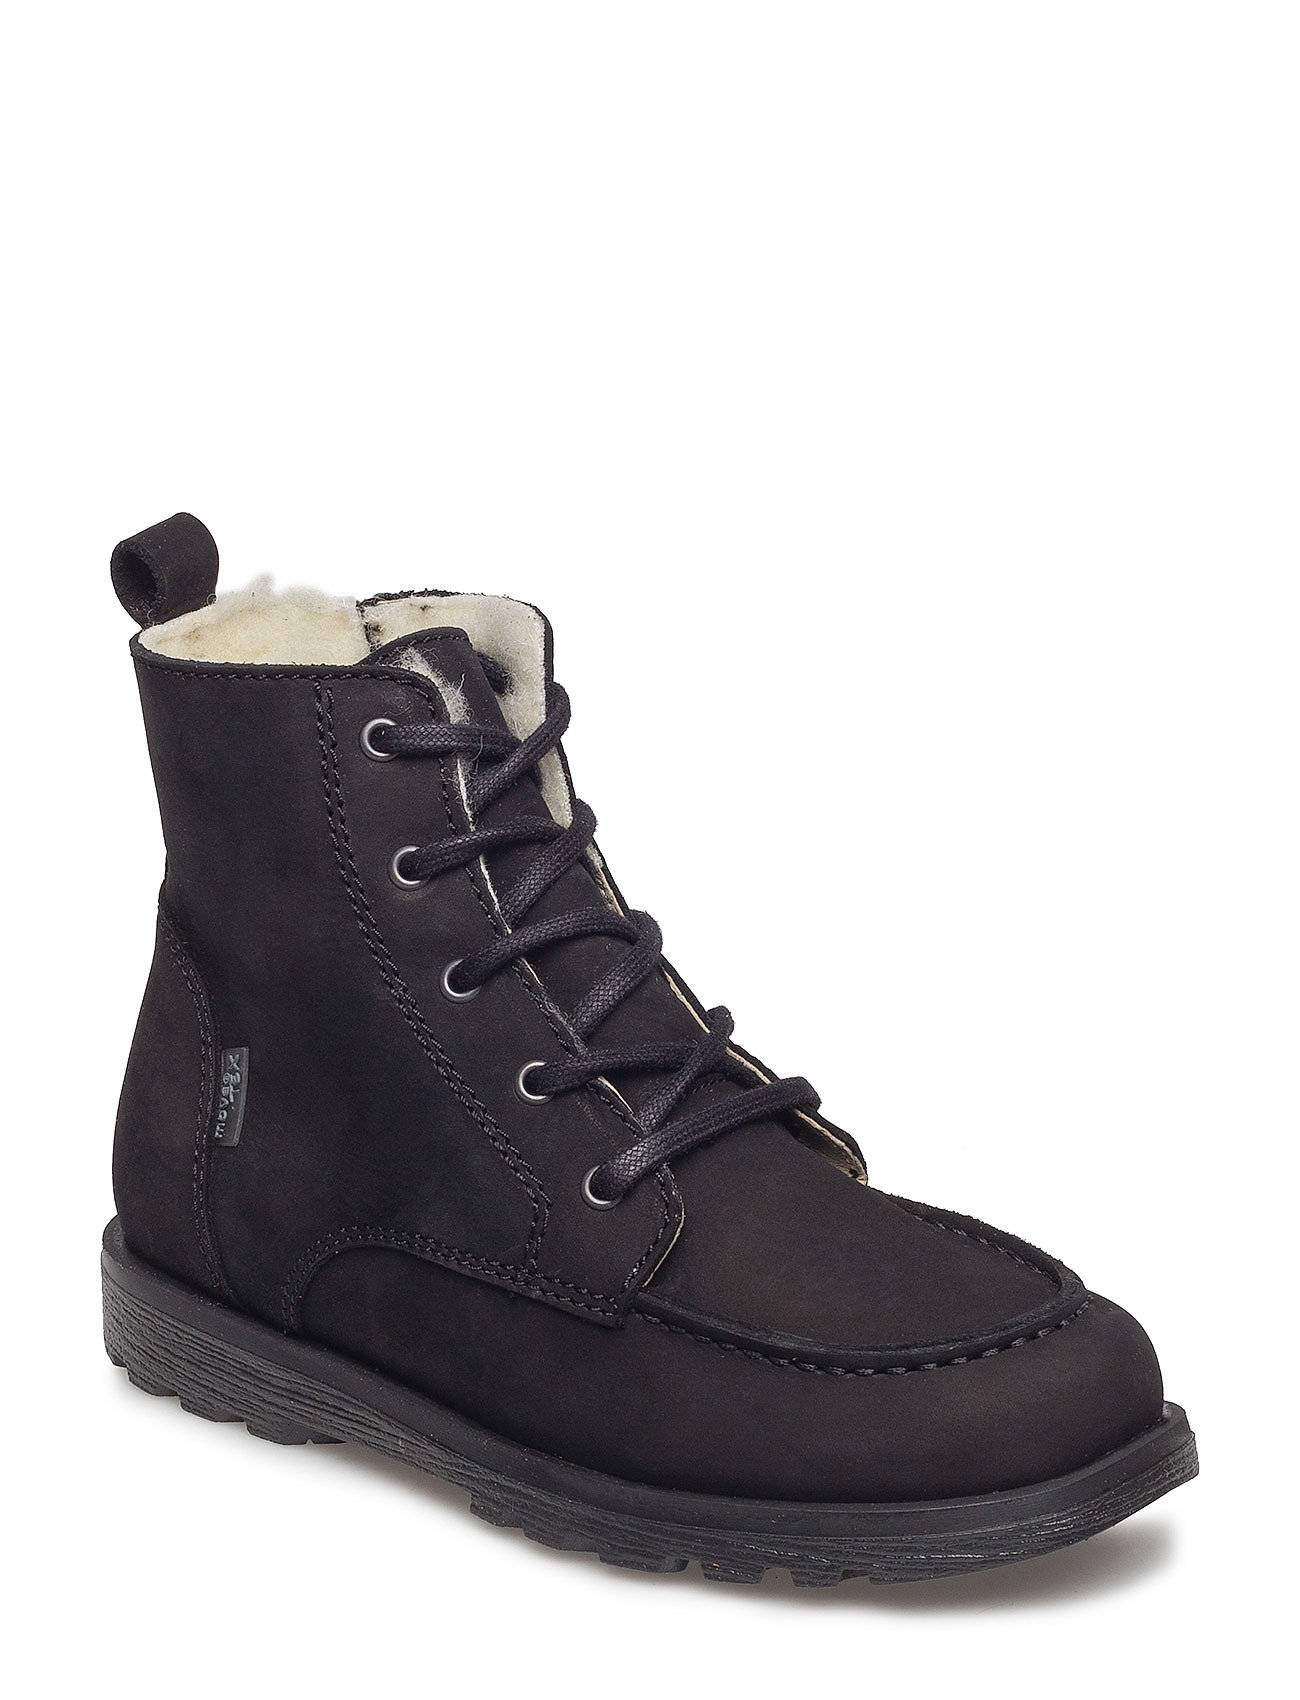 Move by Melton Boys - Winter Boot